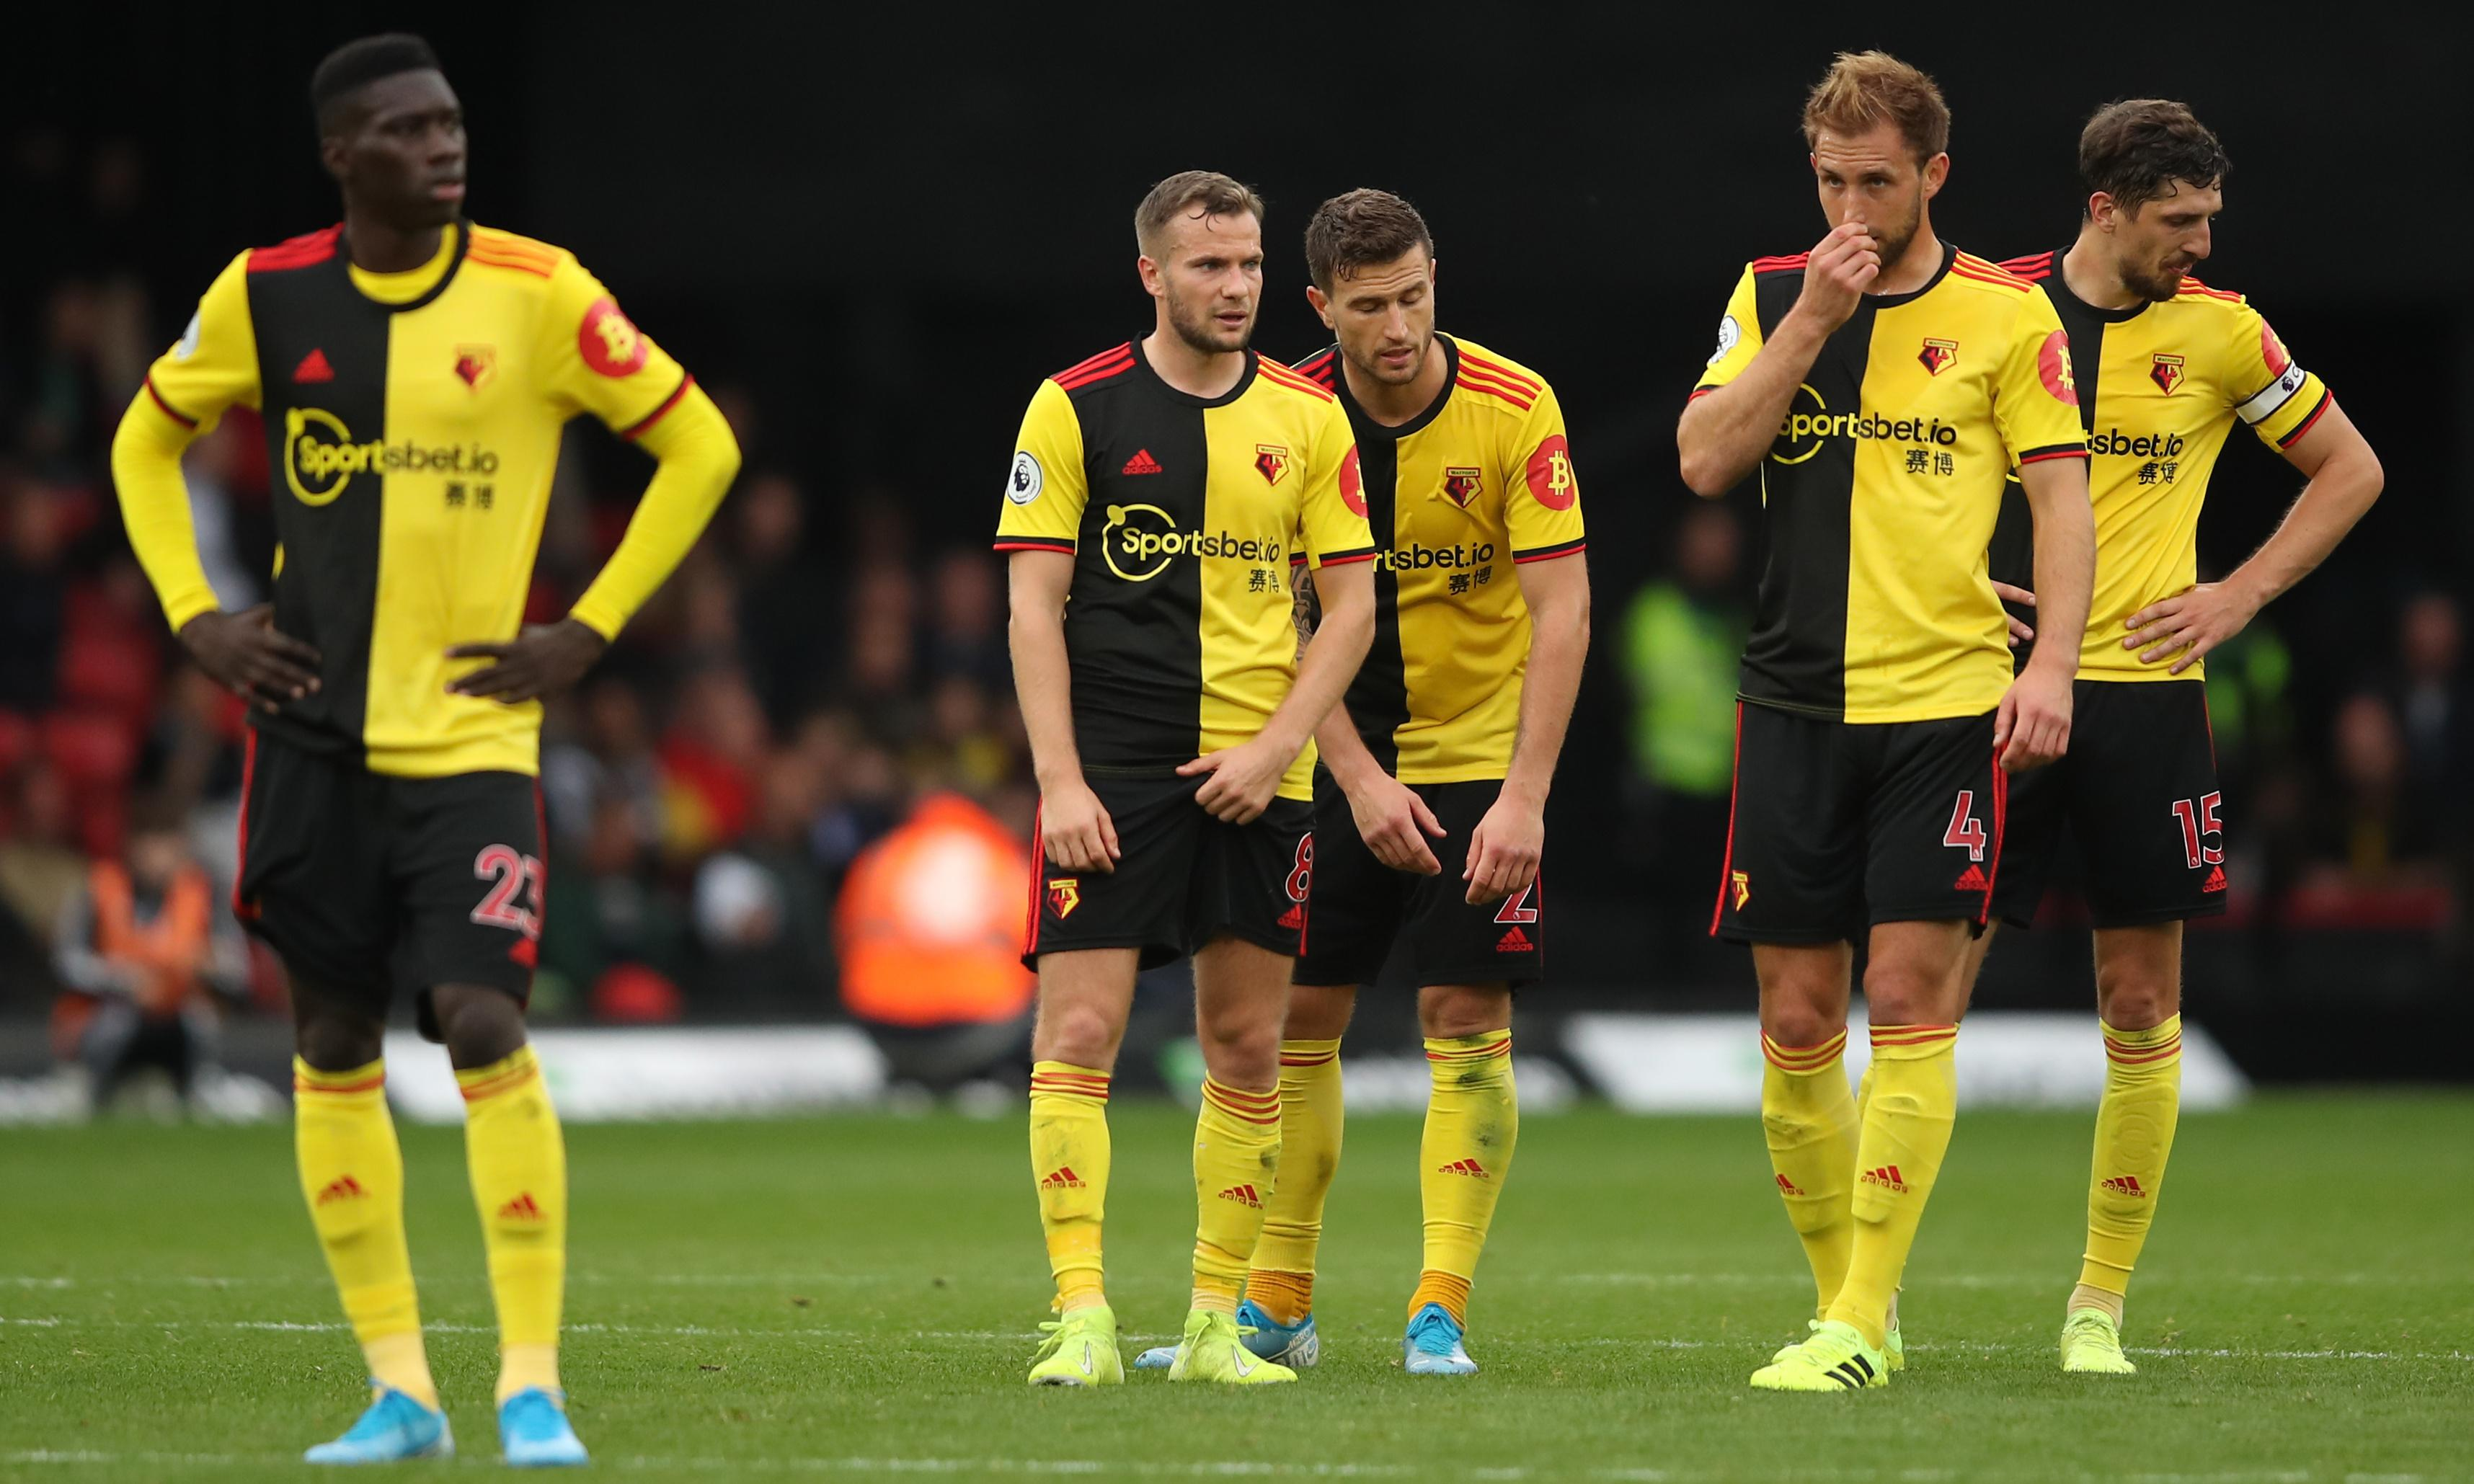 Watford have not won a league game this season, but all is not lost